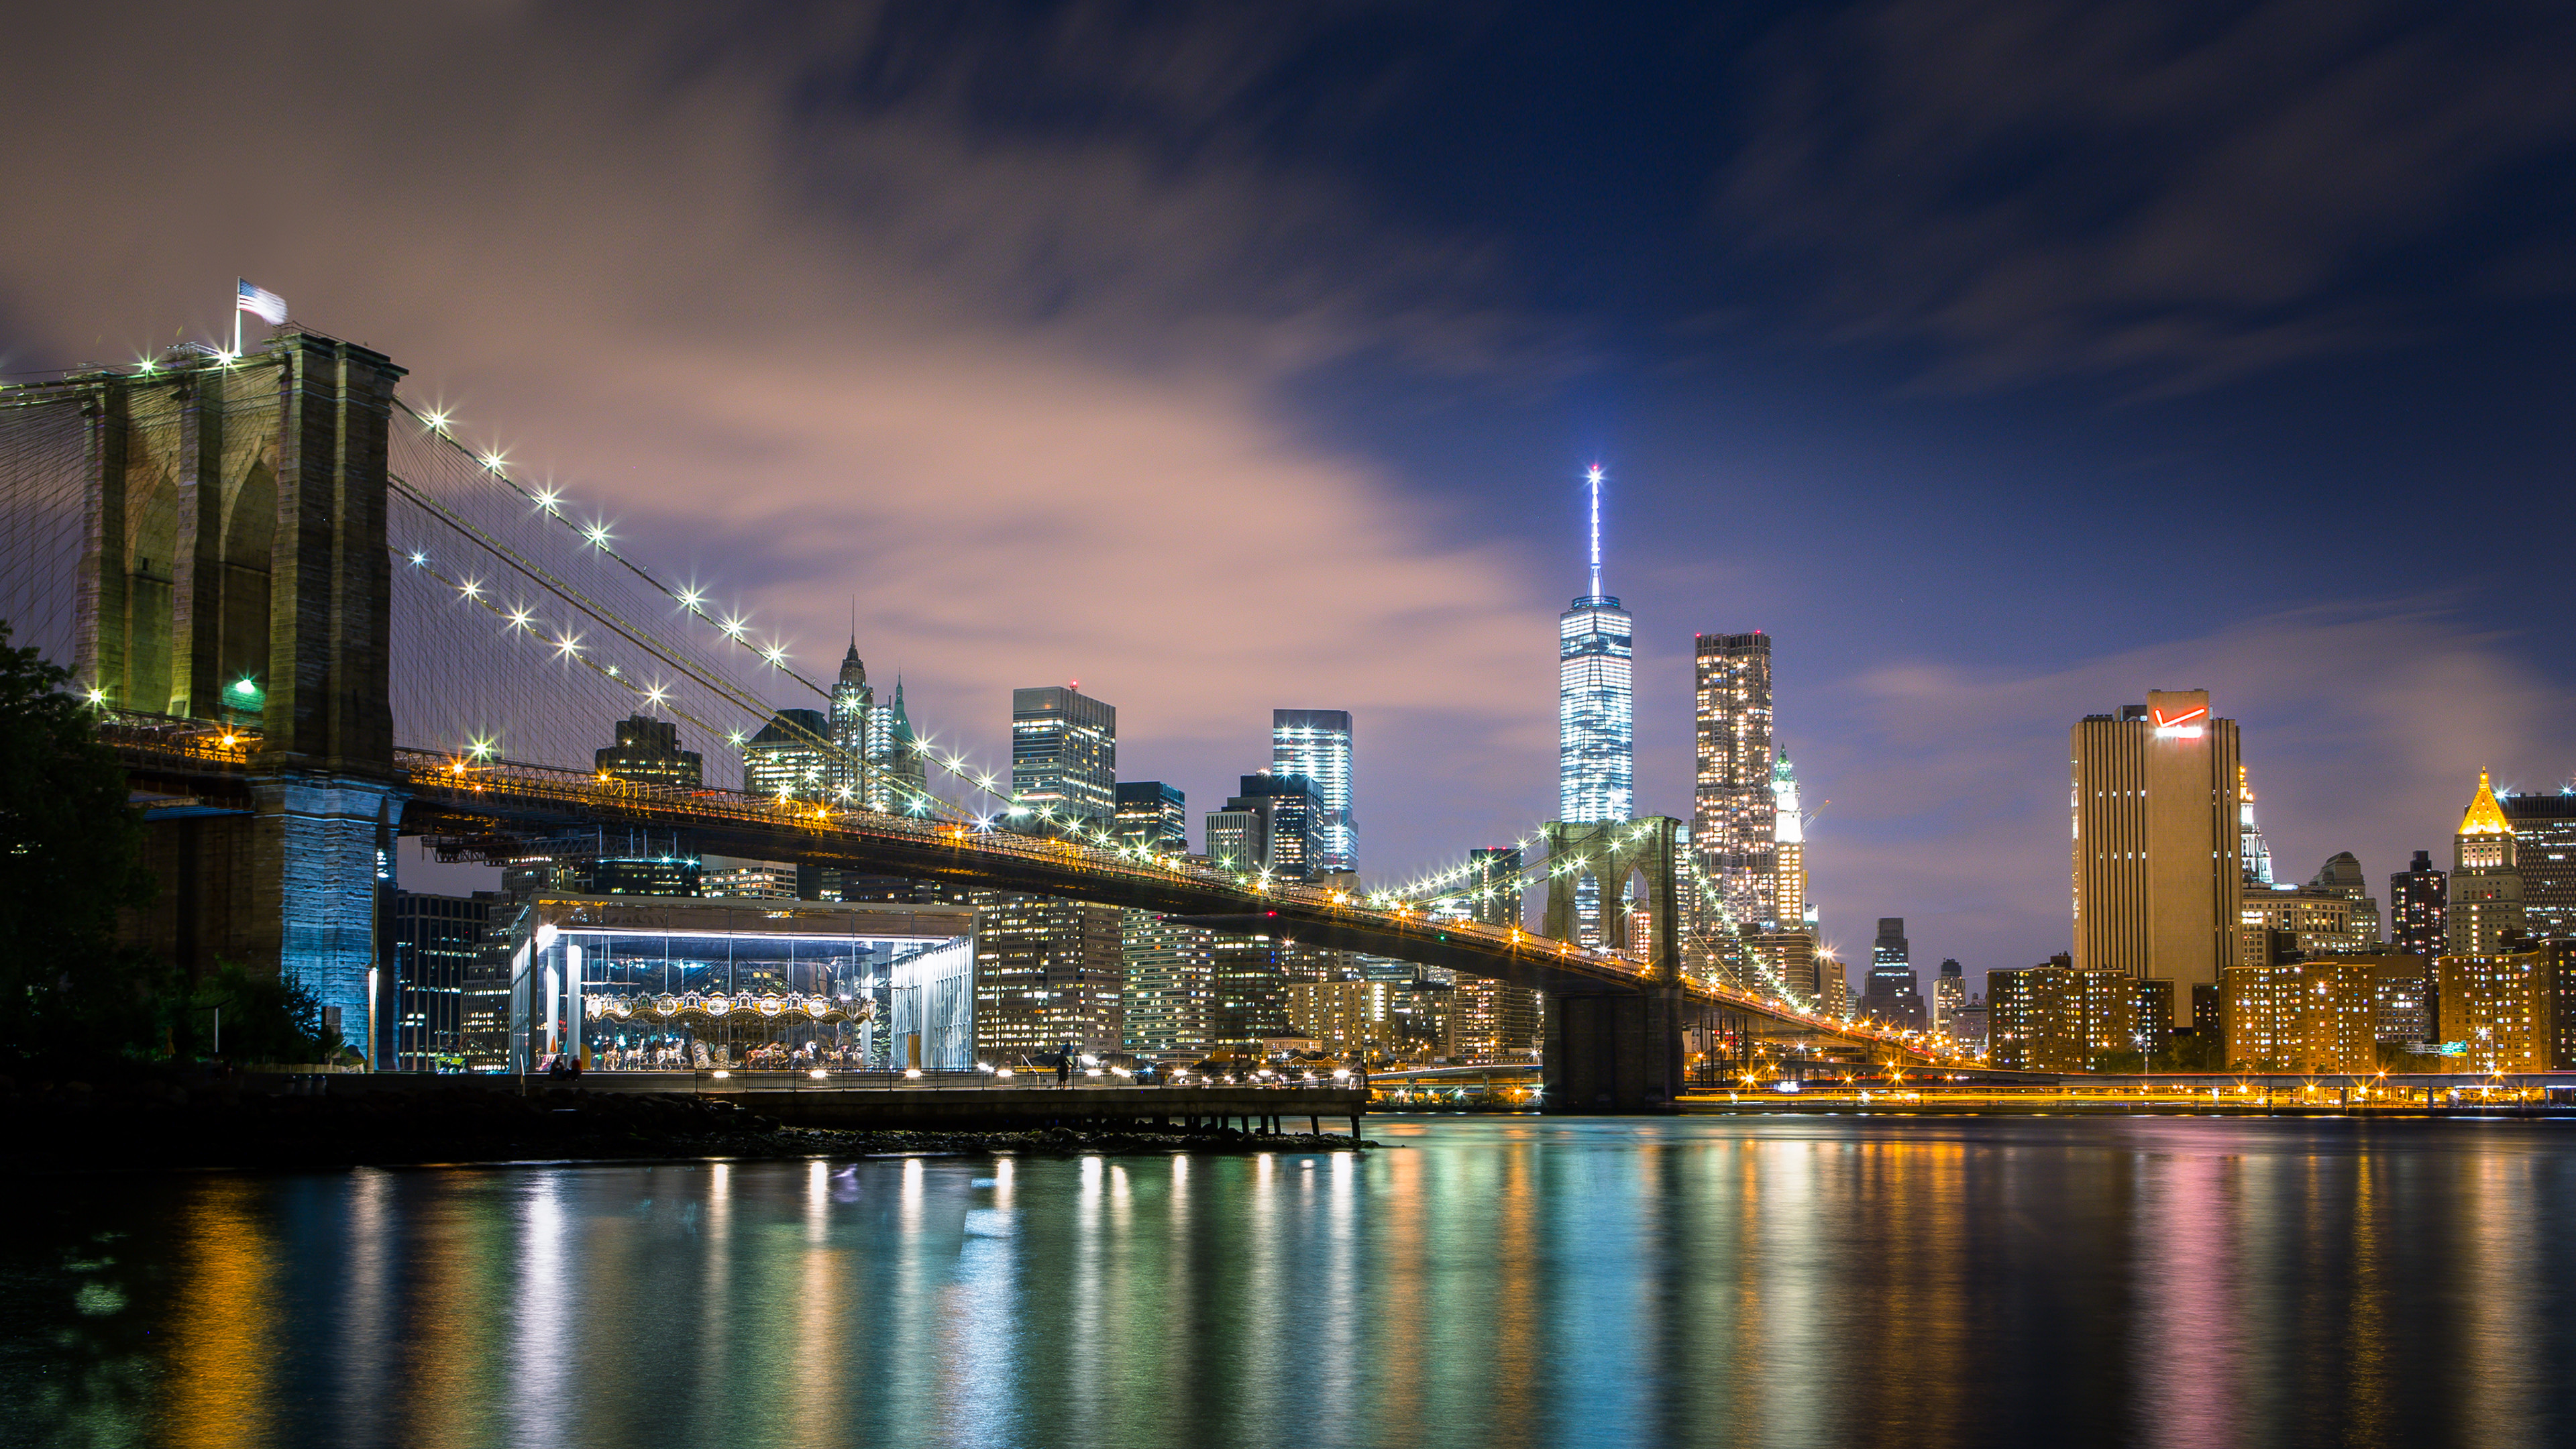 3840x2160 HD Wallpaper | Background Image ID:546073.  Man Made New York